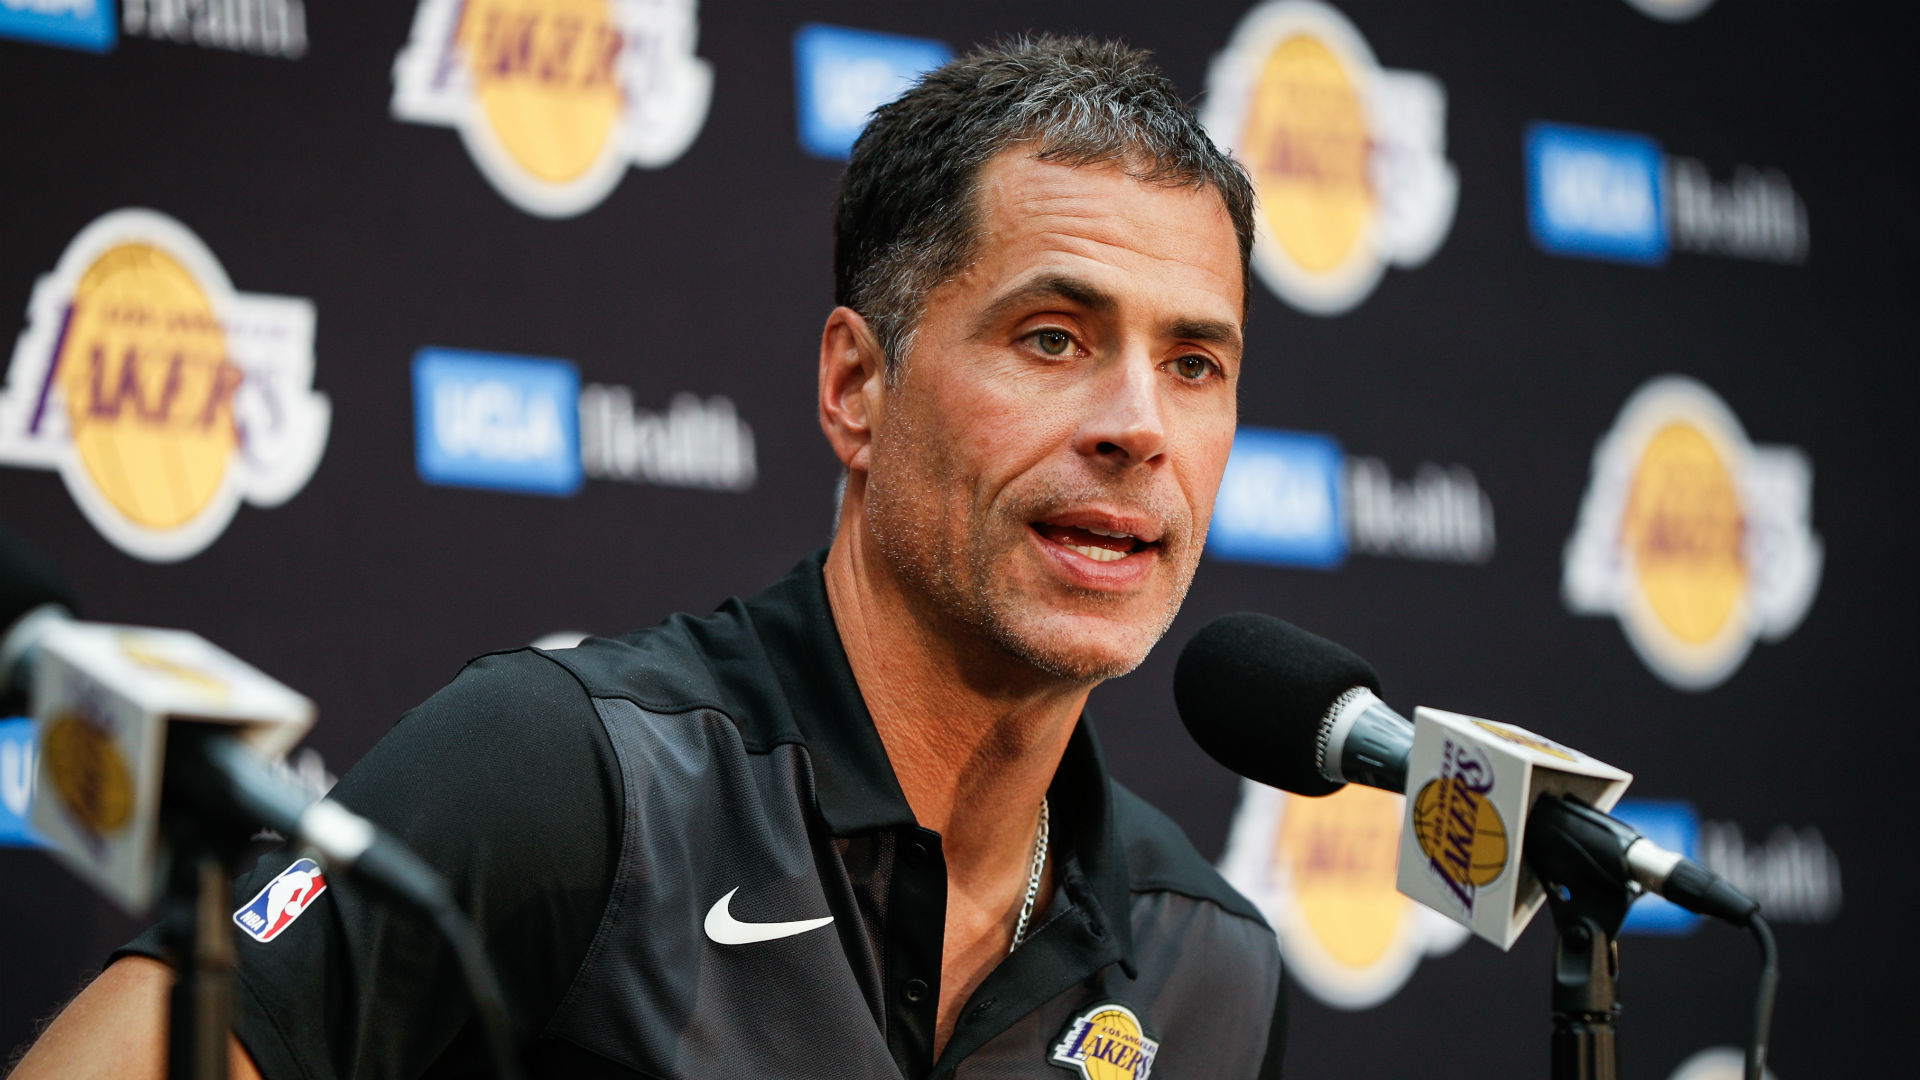 Pelinka: Anything short of a championship is not success for Lakers